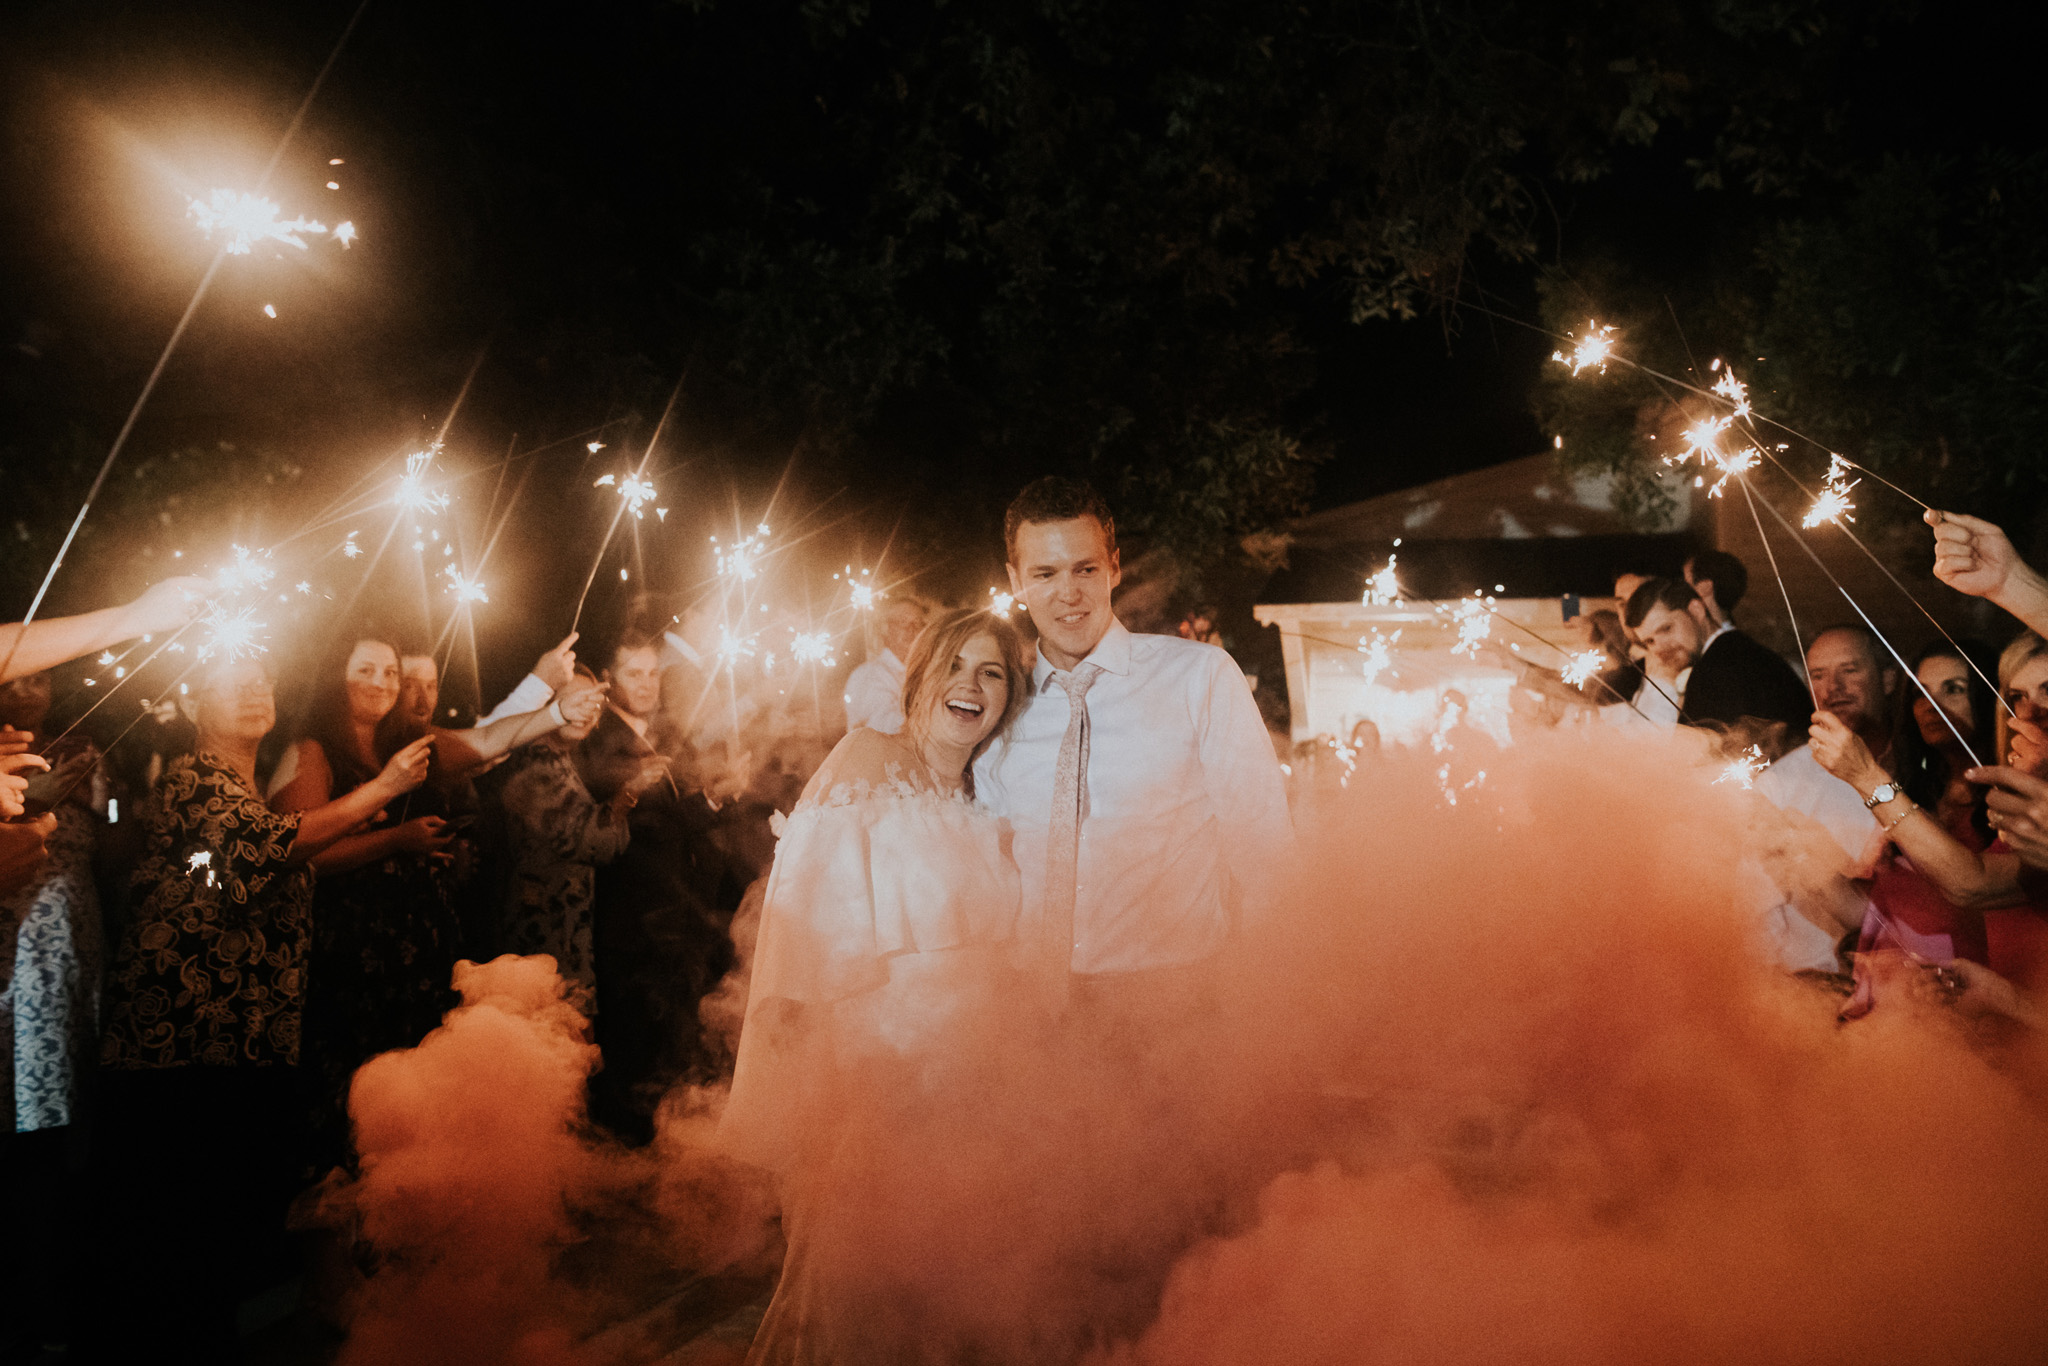 B+G Exit w Sparklers + Colored Smoke Bomb.jpg